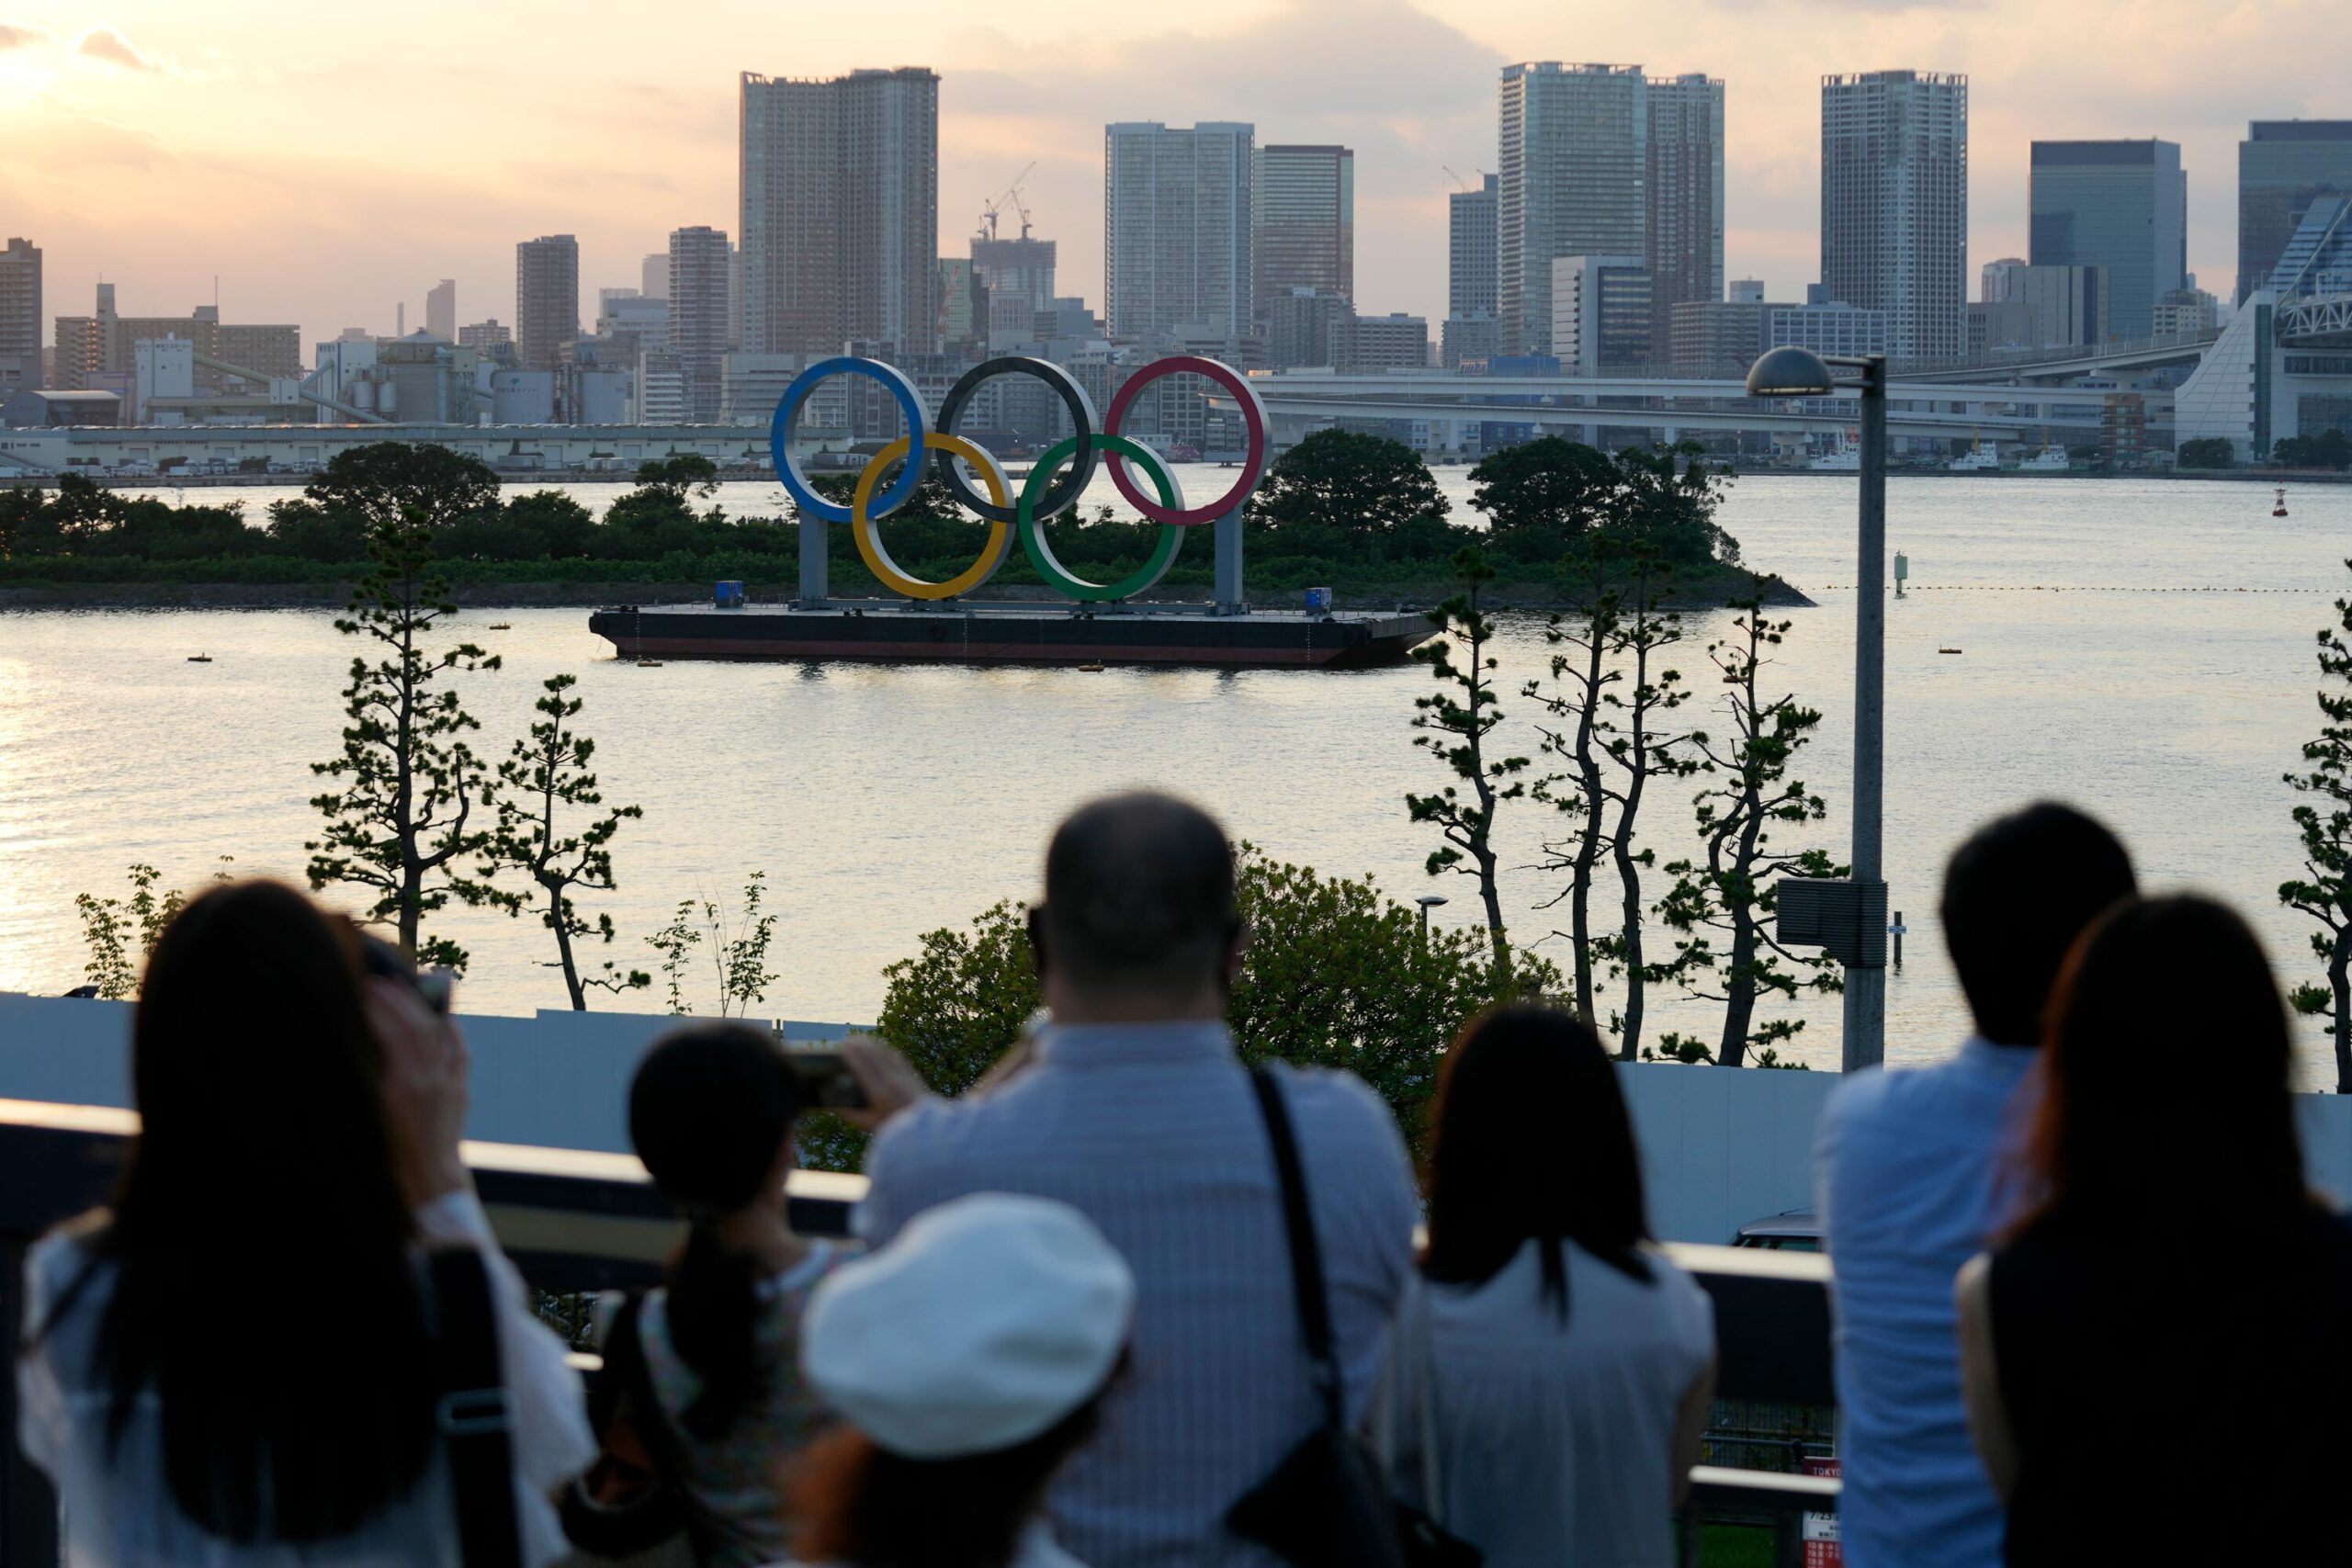 <i>Eugene Hoshiko/AP</i><br/>Visitors look at the Olympic rings floating in the water at Odaiba Marine Park